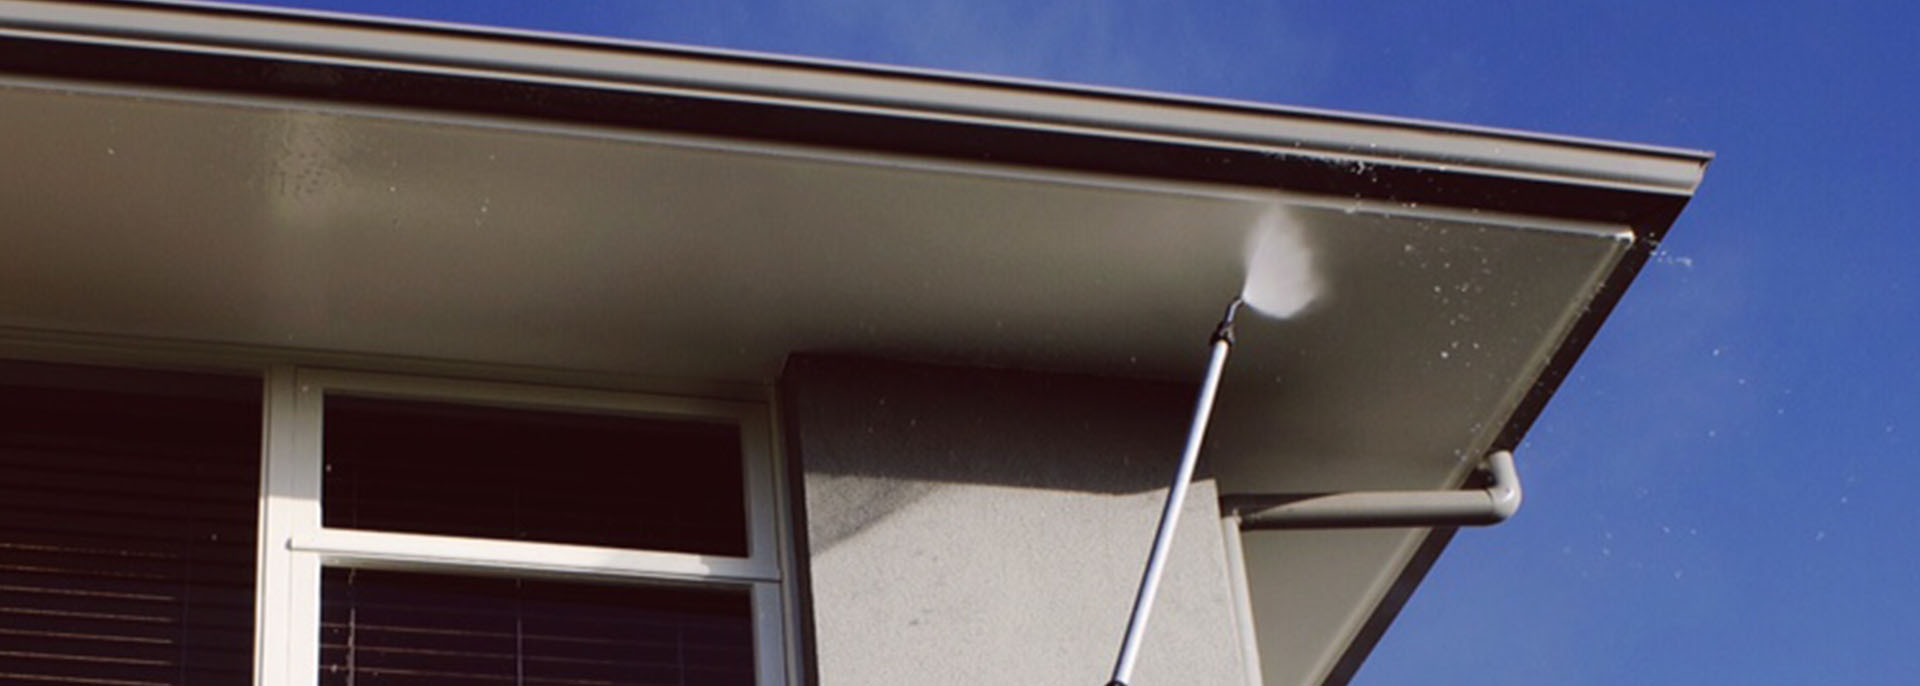 Exterior House Washing #33: House Washing. If You Want To Give Your Home More Curb Appeal, One Great Way Is Giving The Exterior A Thorough Cleaning. It Is A Quick Step To Reduce Repair ...